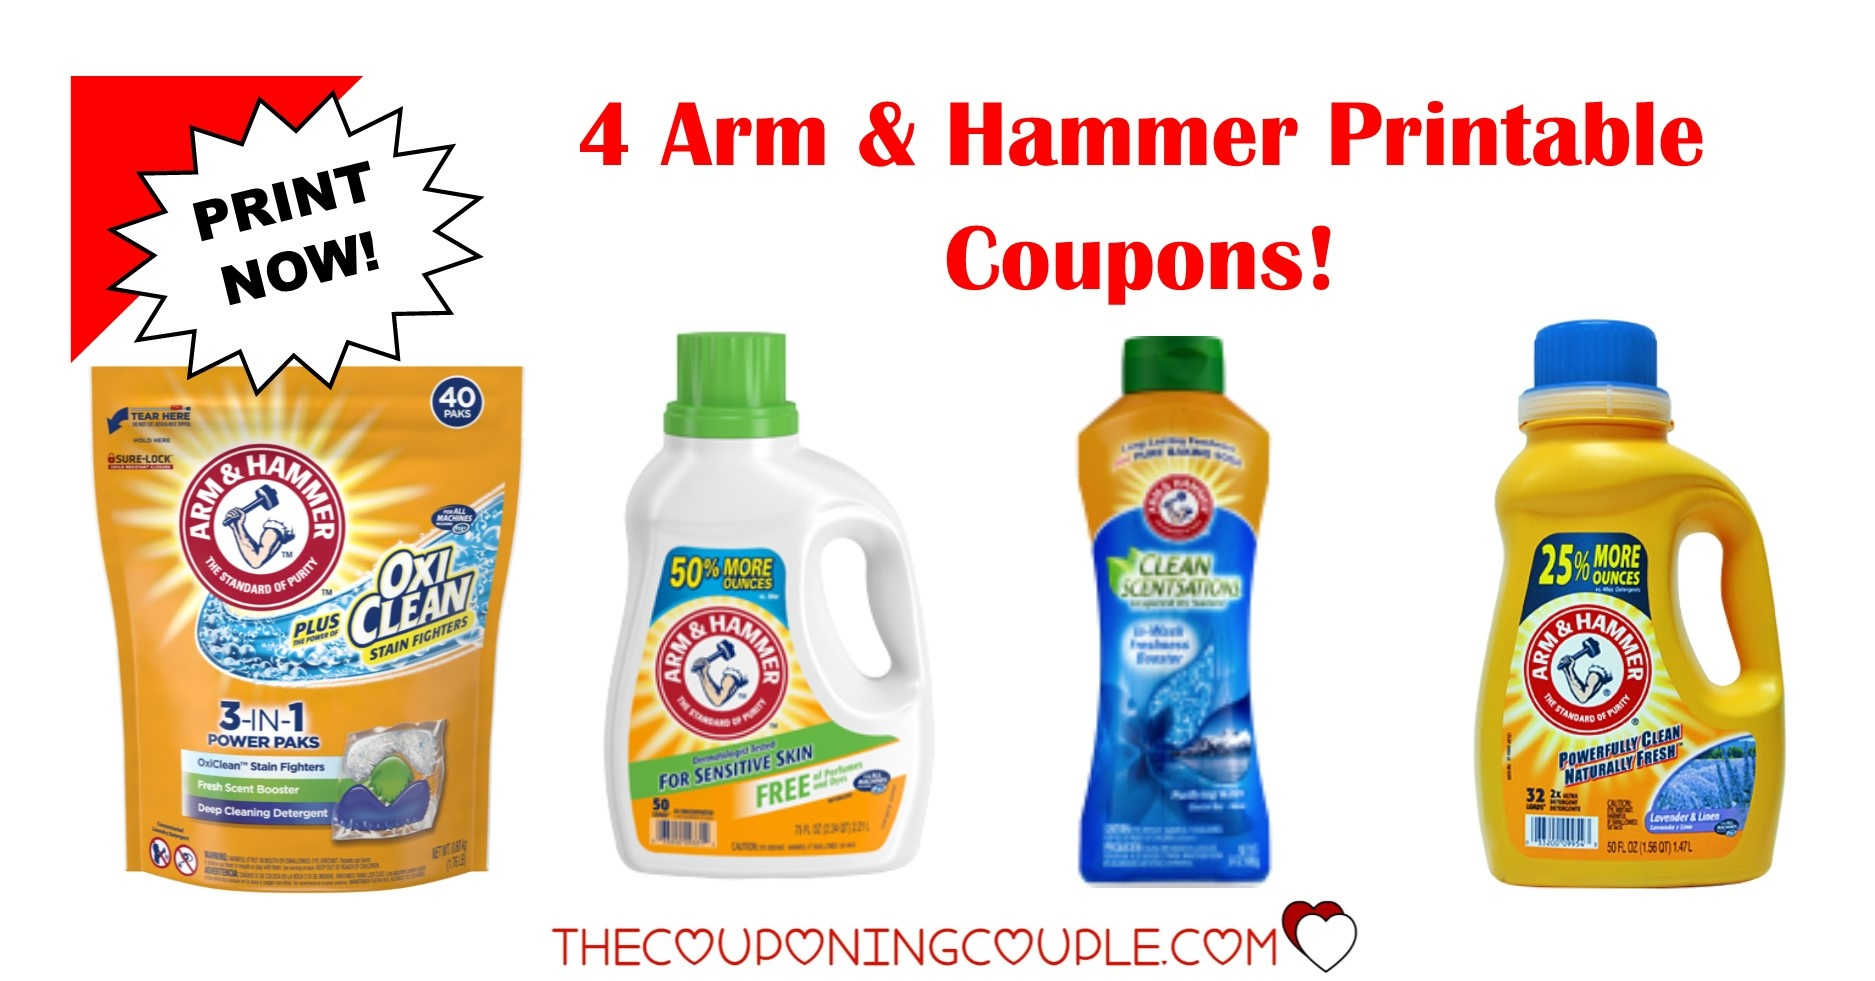 4 Arm & Hammer Printable Coupons ~ Print Now!! Don't Miss Out! - Free Printable Coupons For Arm And Hammer Laundry Detergent